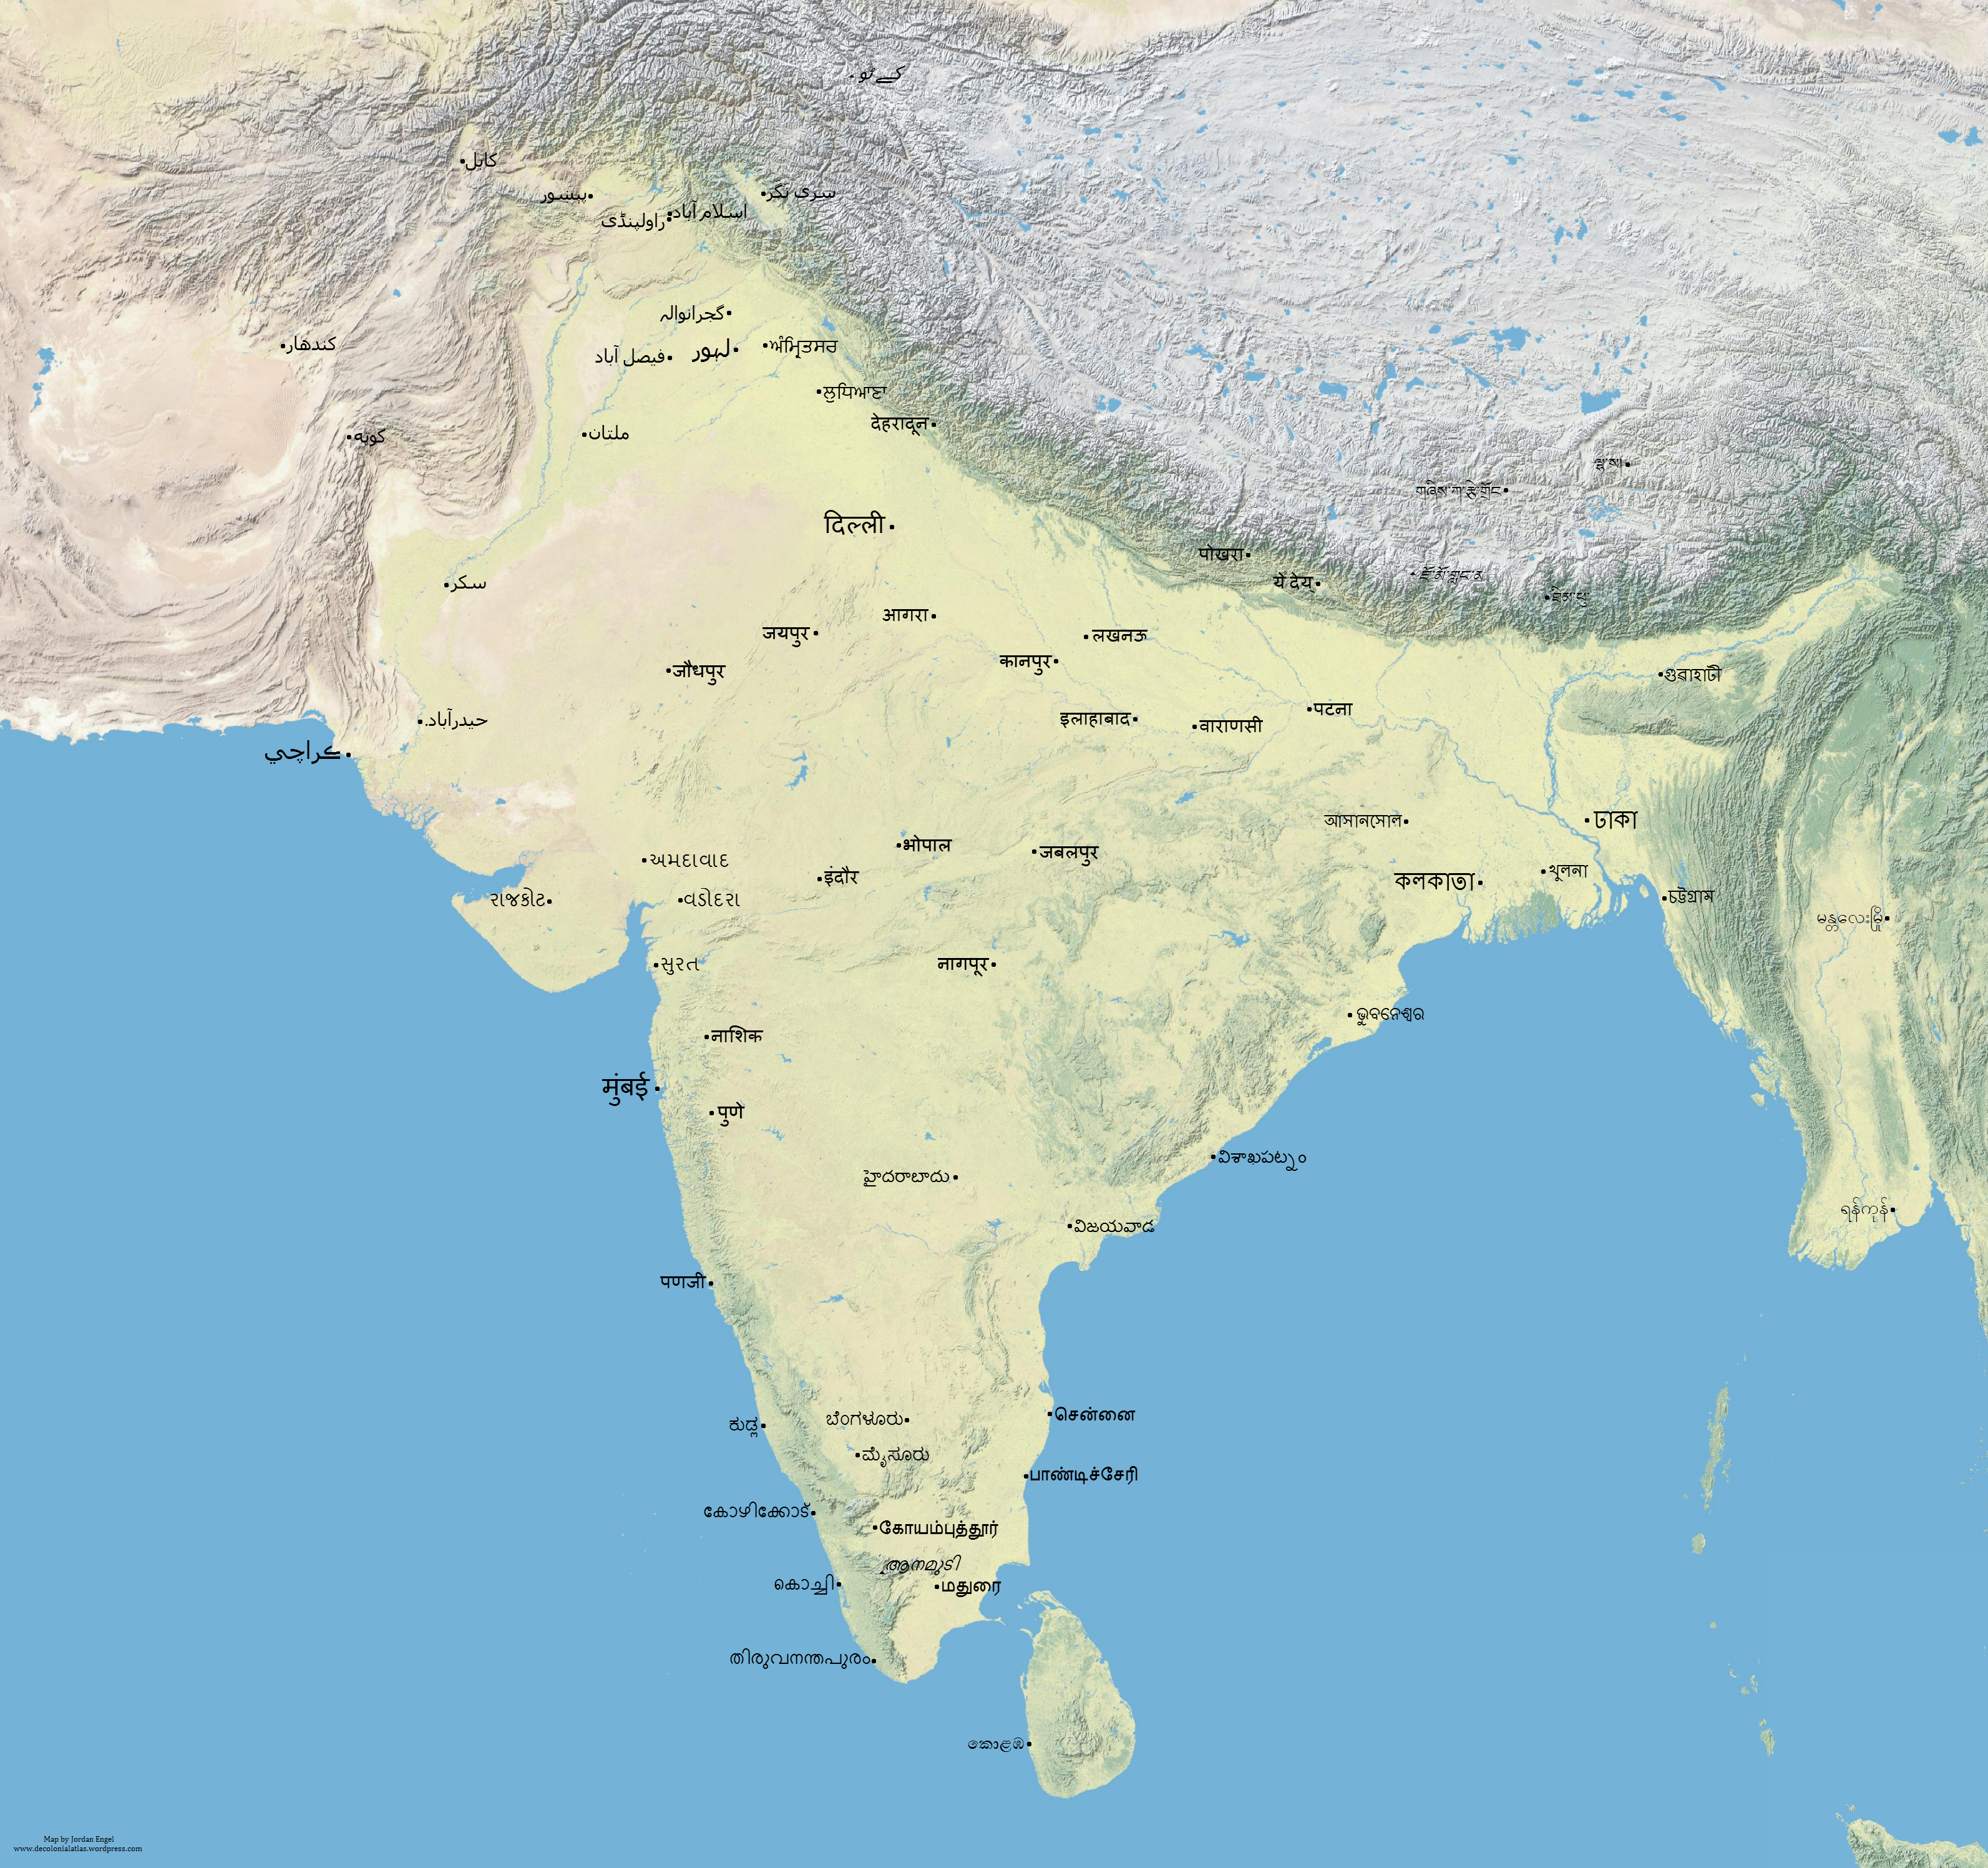 Map Of Asia No Names.South Asia Decolonized Native Place Names No Borders The